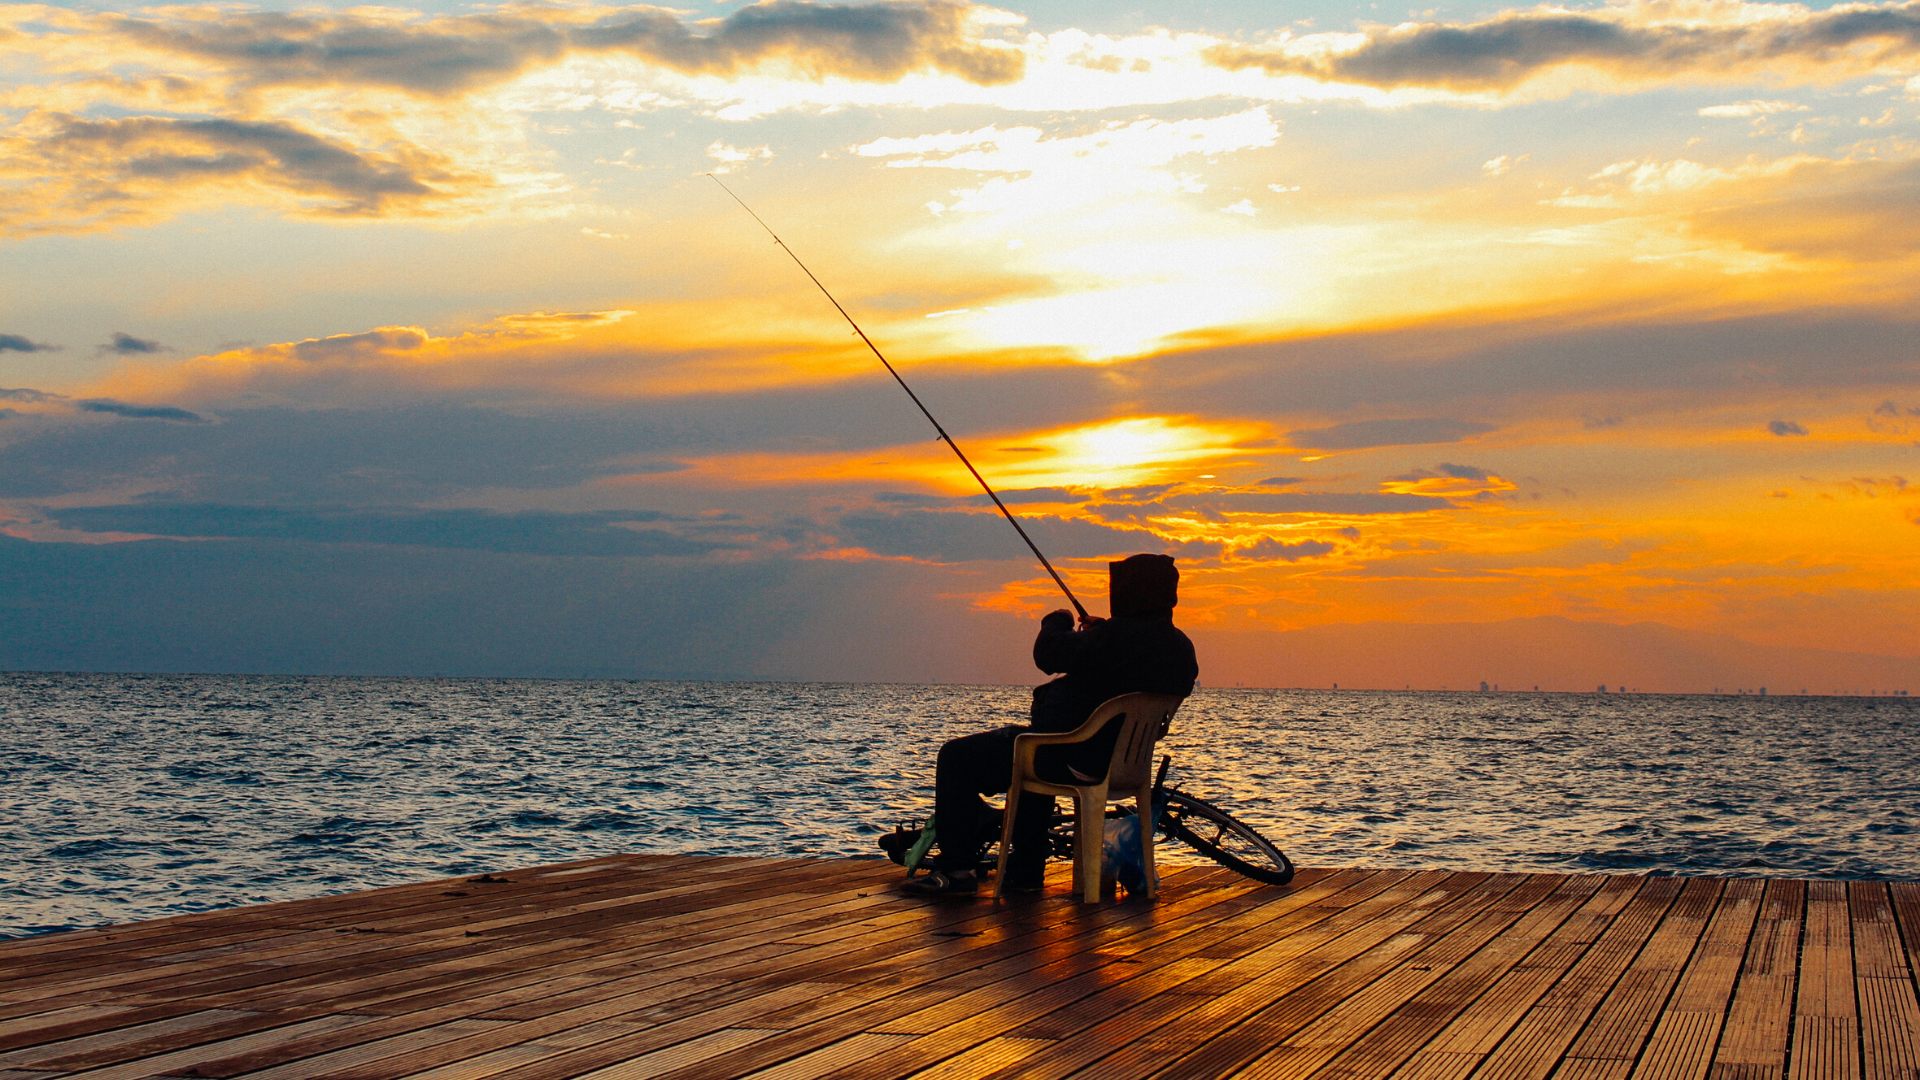 If you are wondering where to fish at the shore, there are many locations here.